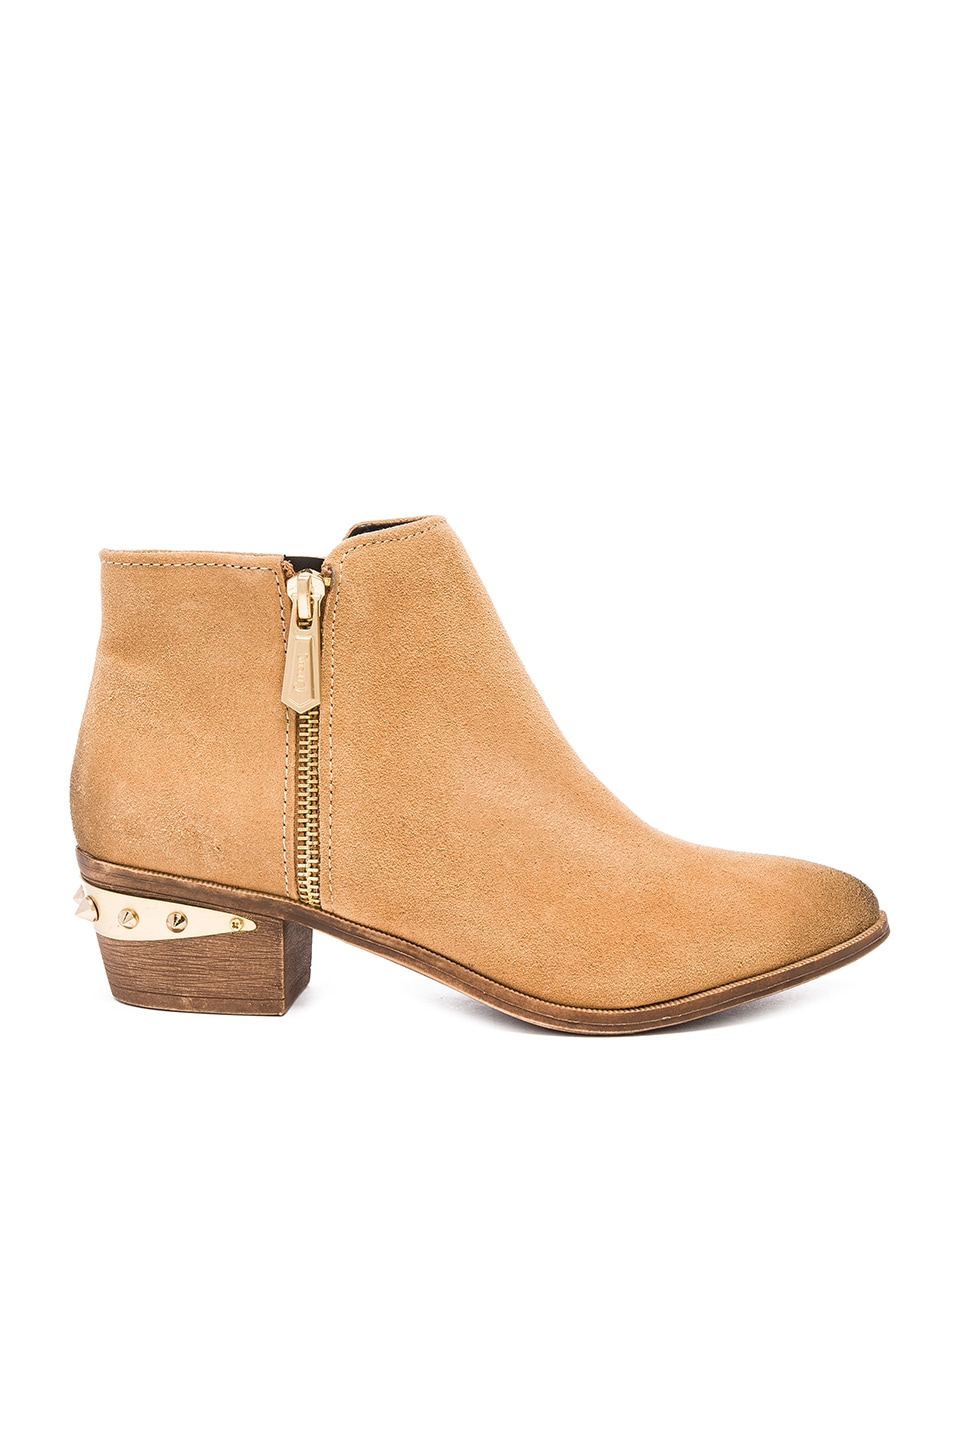 Circus by Sam Edelman Holt Bootie in Camel